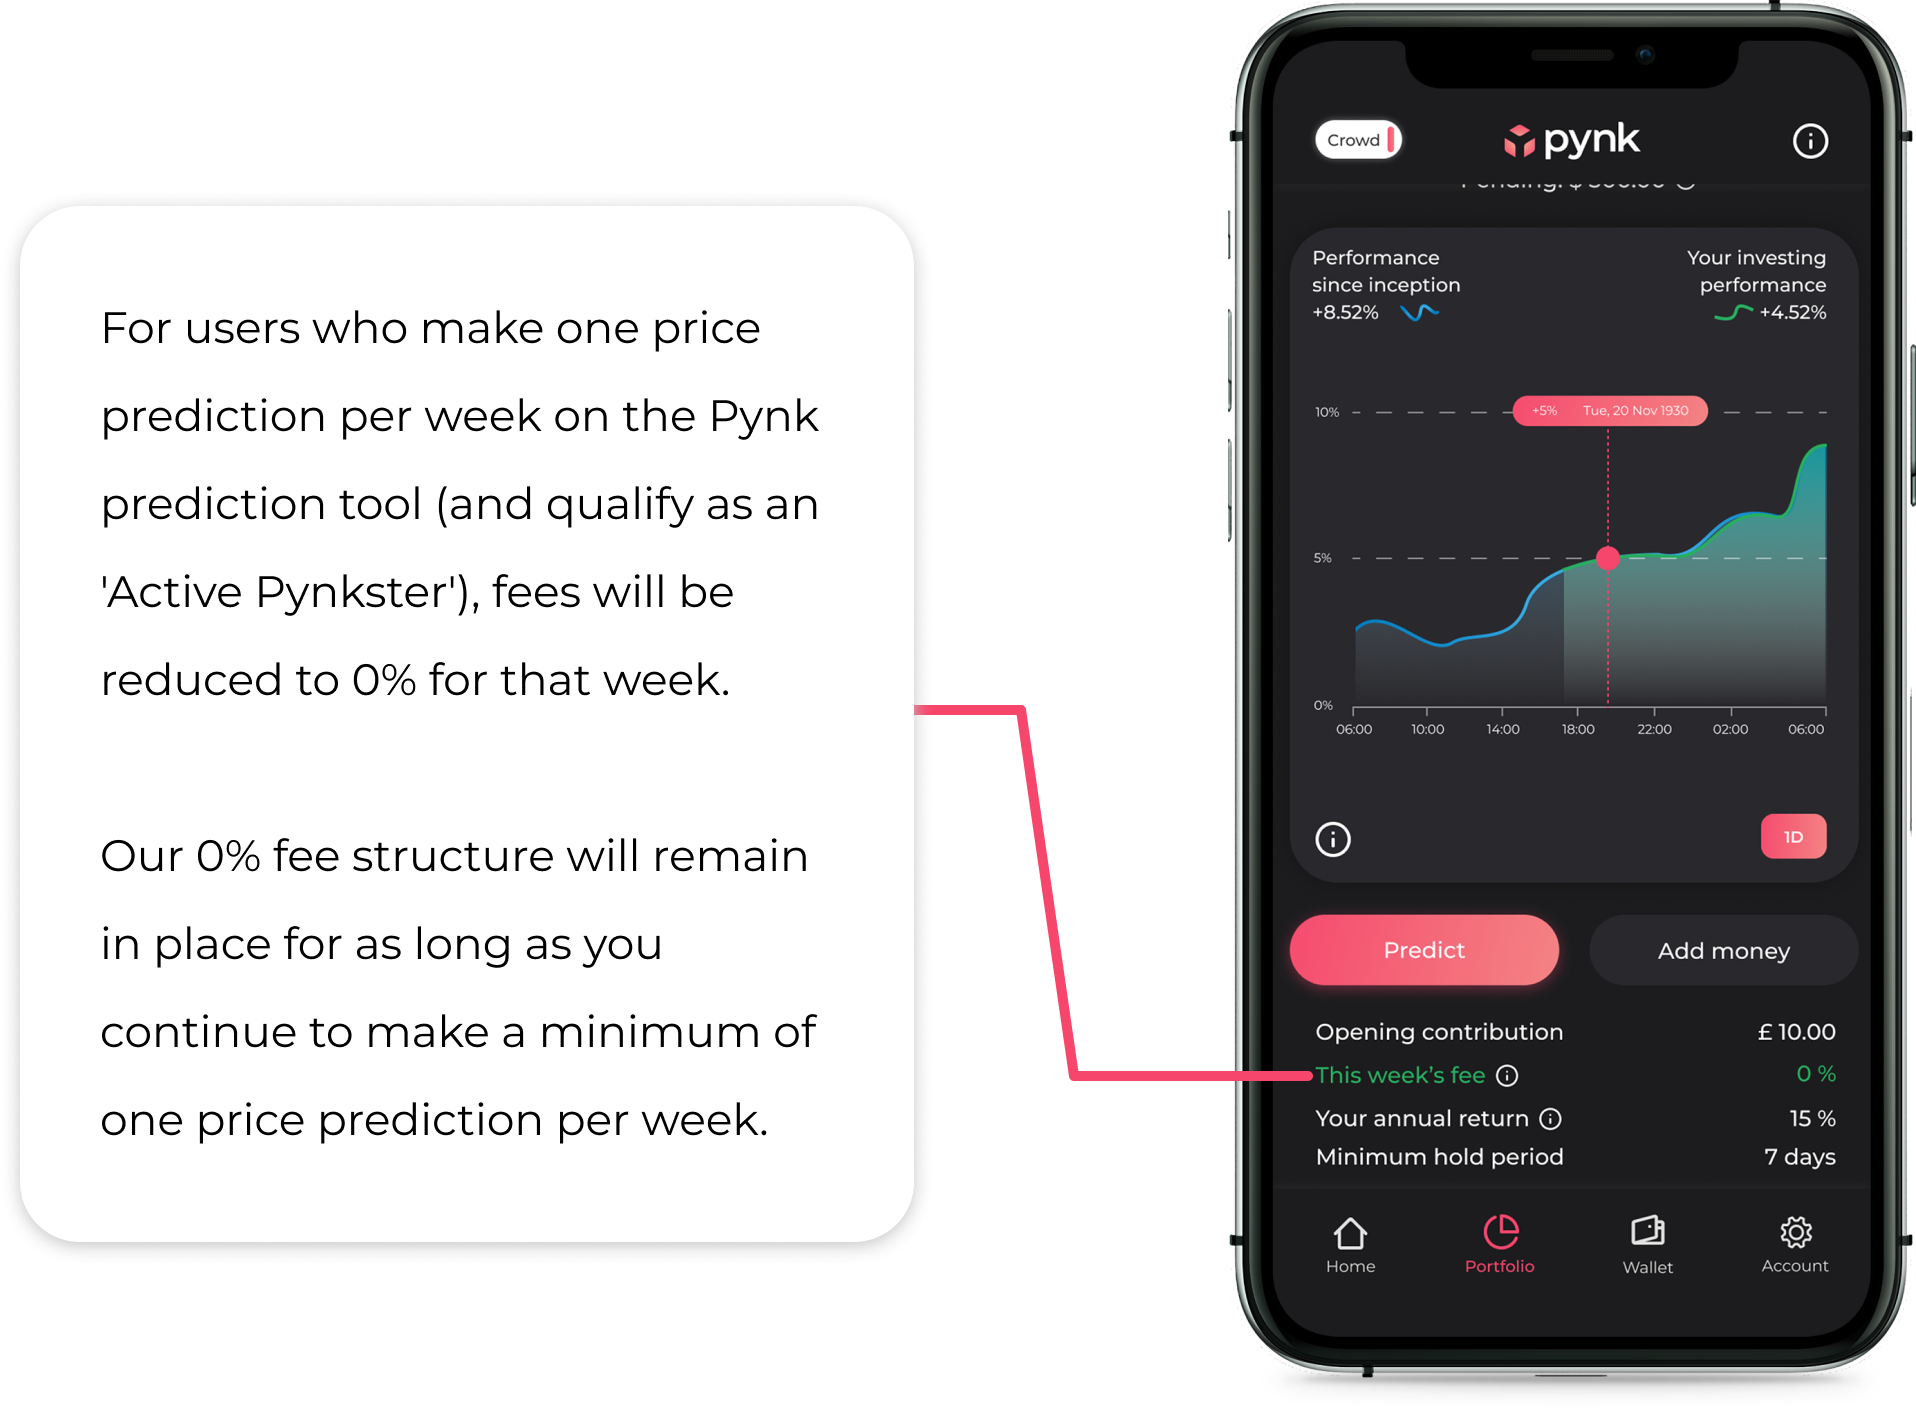 Pynk investing annualised fee description